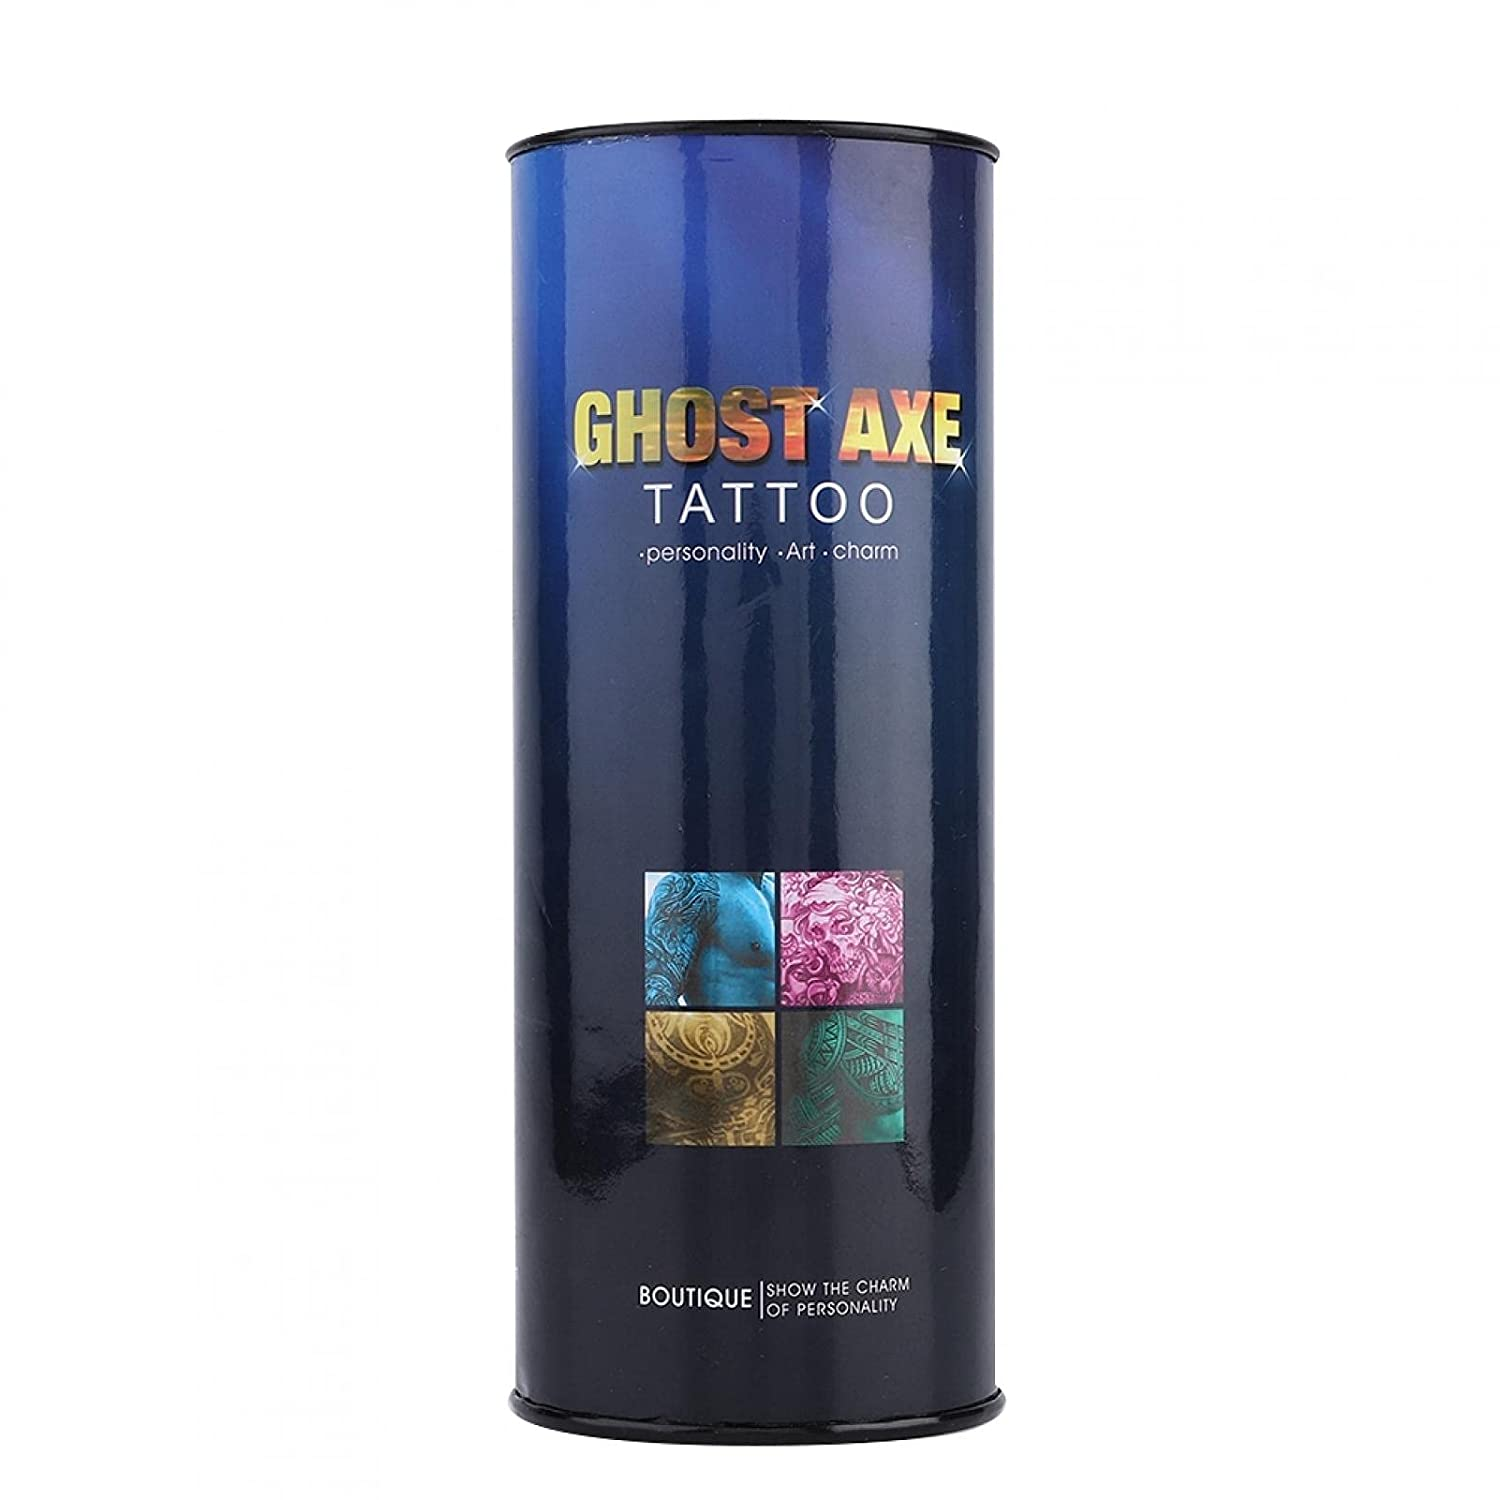 Tattoo All stores are sold Aftercare Bandage Rolls Deluxe Transparent Large Dressing Film